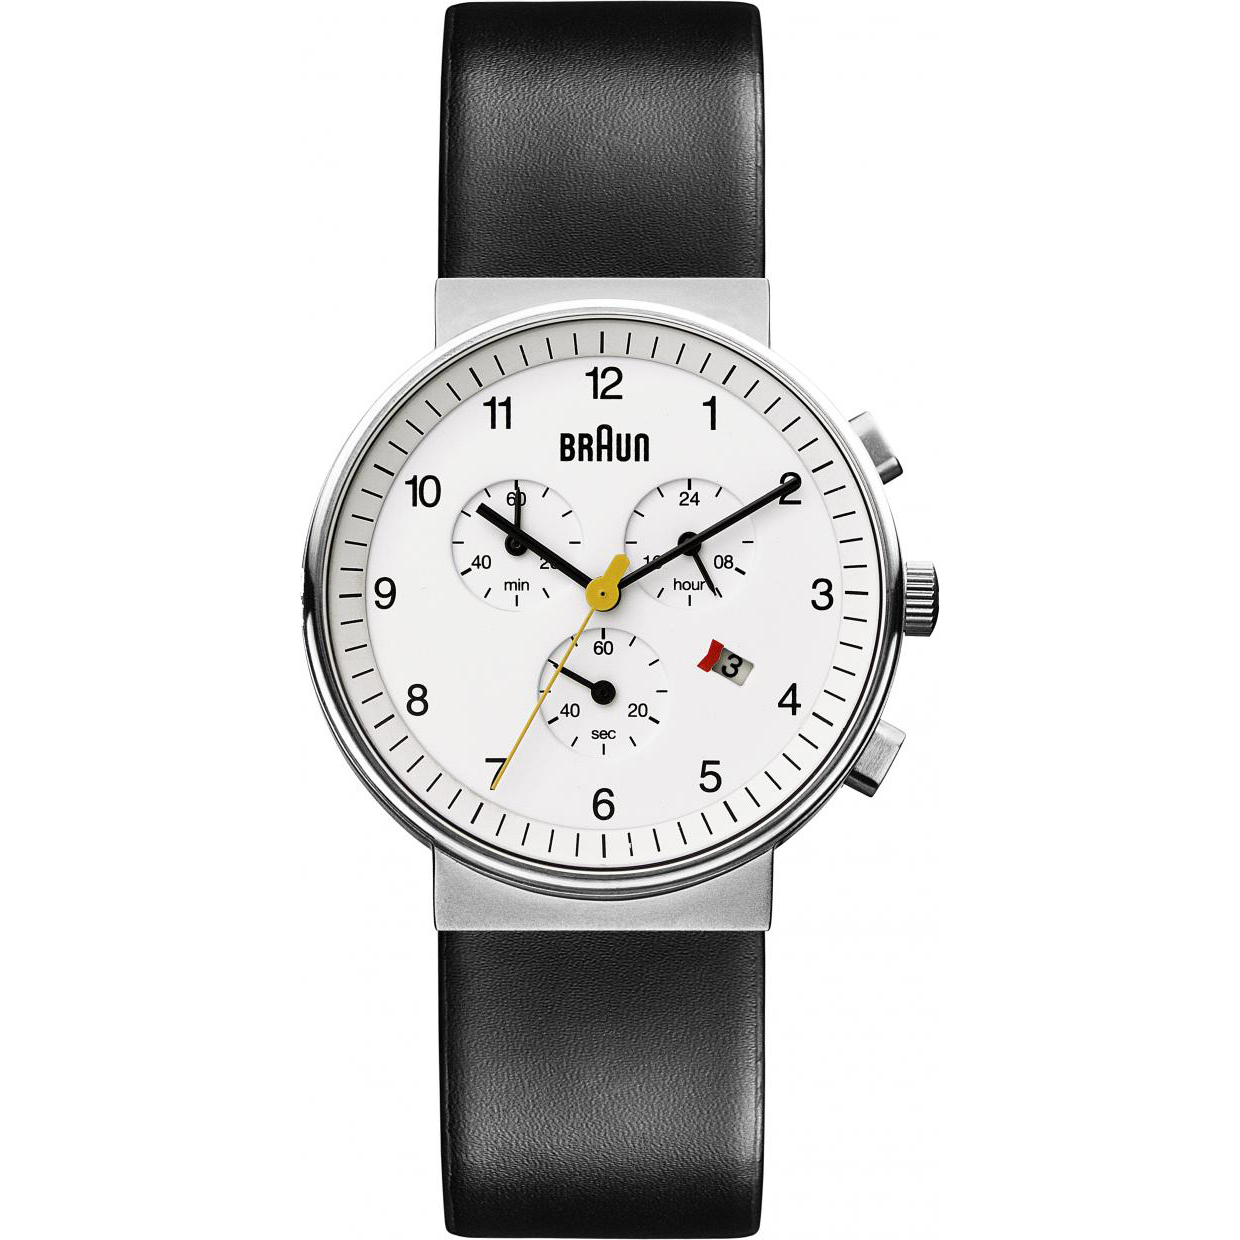 The restaurateur's Braun watch is a reproduction of a 1960s Dieter Rams design. $300, braun-clocks.com